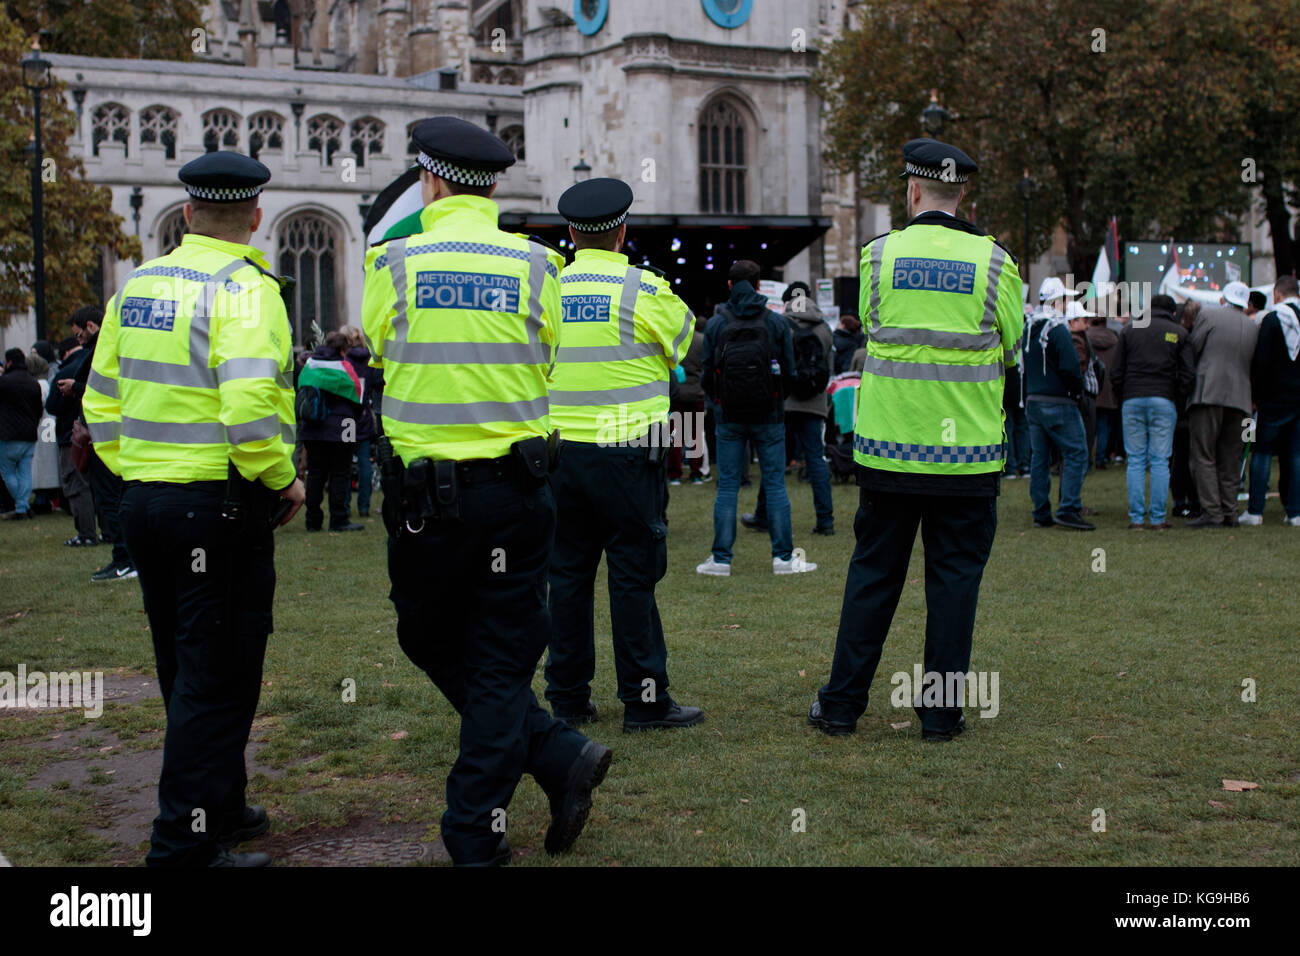 Four policemen overlooking Pro-Palestine protest, London, UK, 4th November 2017 - Stock Image